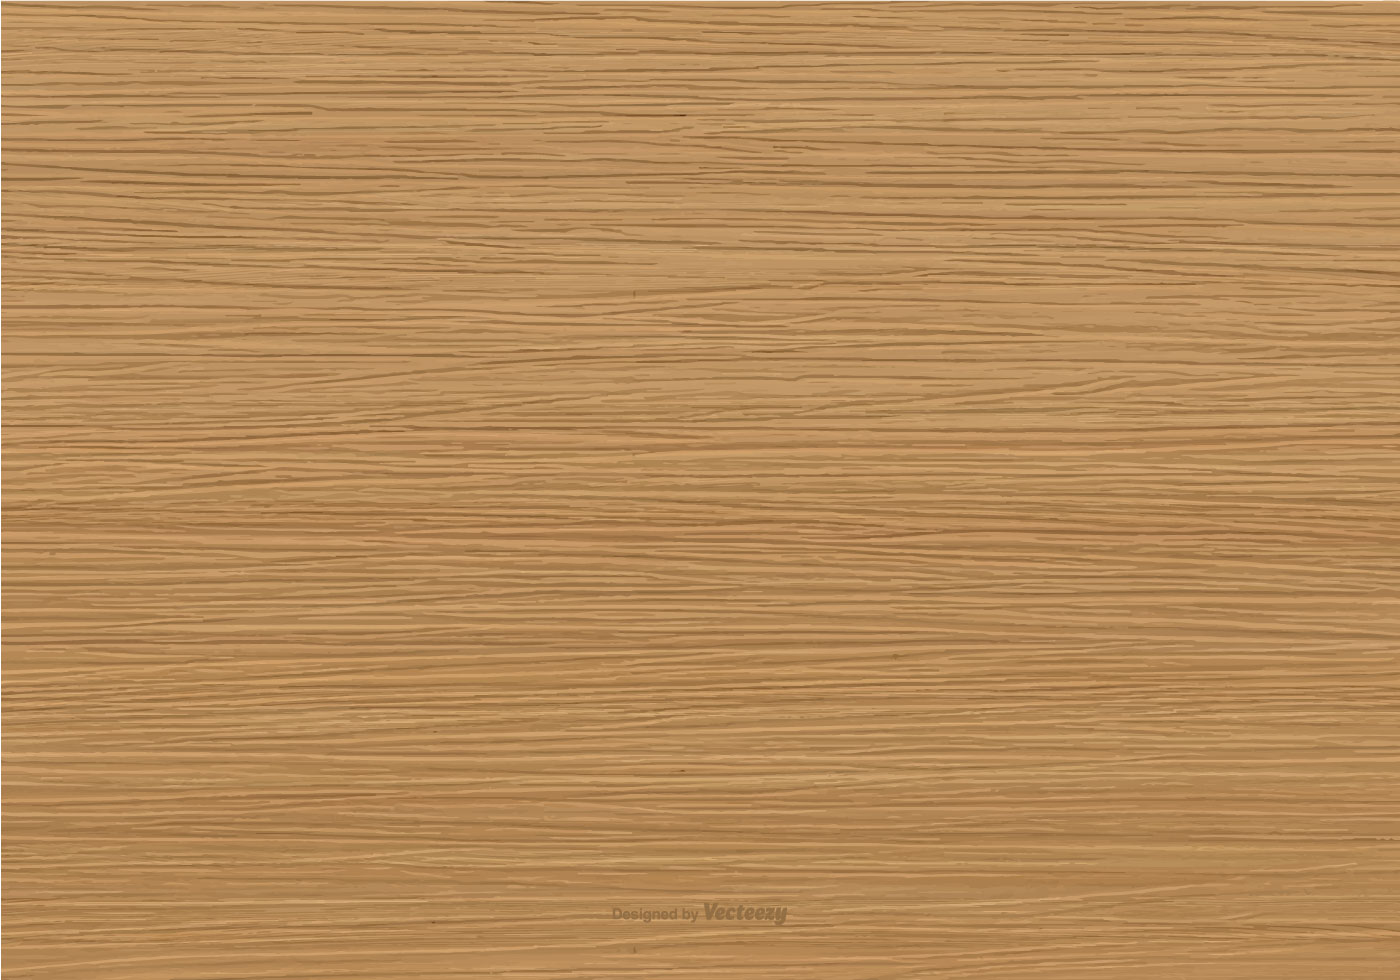 1400x980 Wood Free Vector Art, Backgrounds, Amp Textures 11k Images